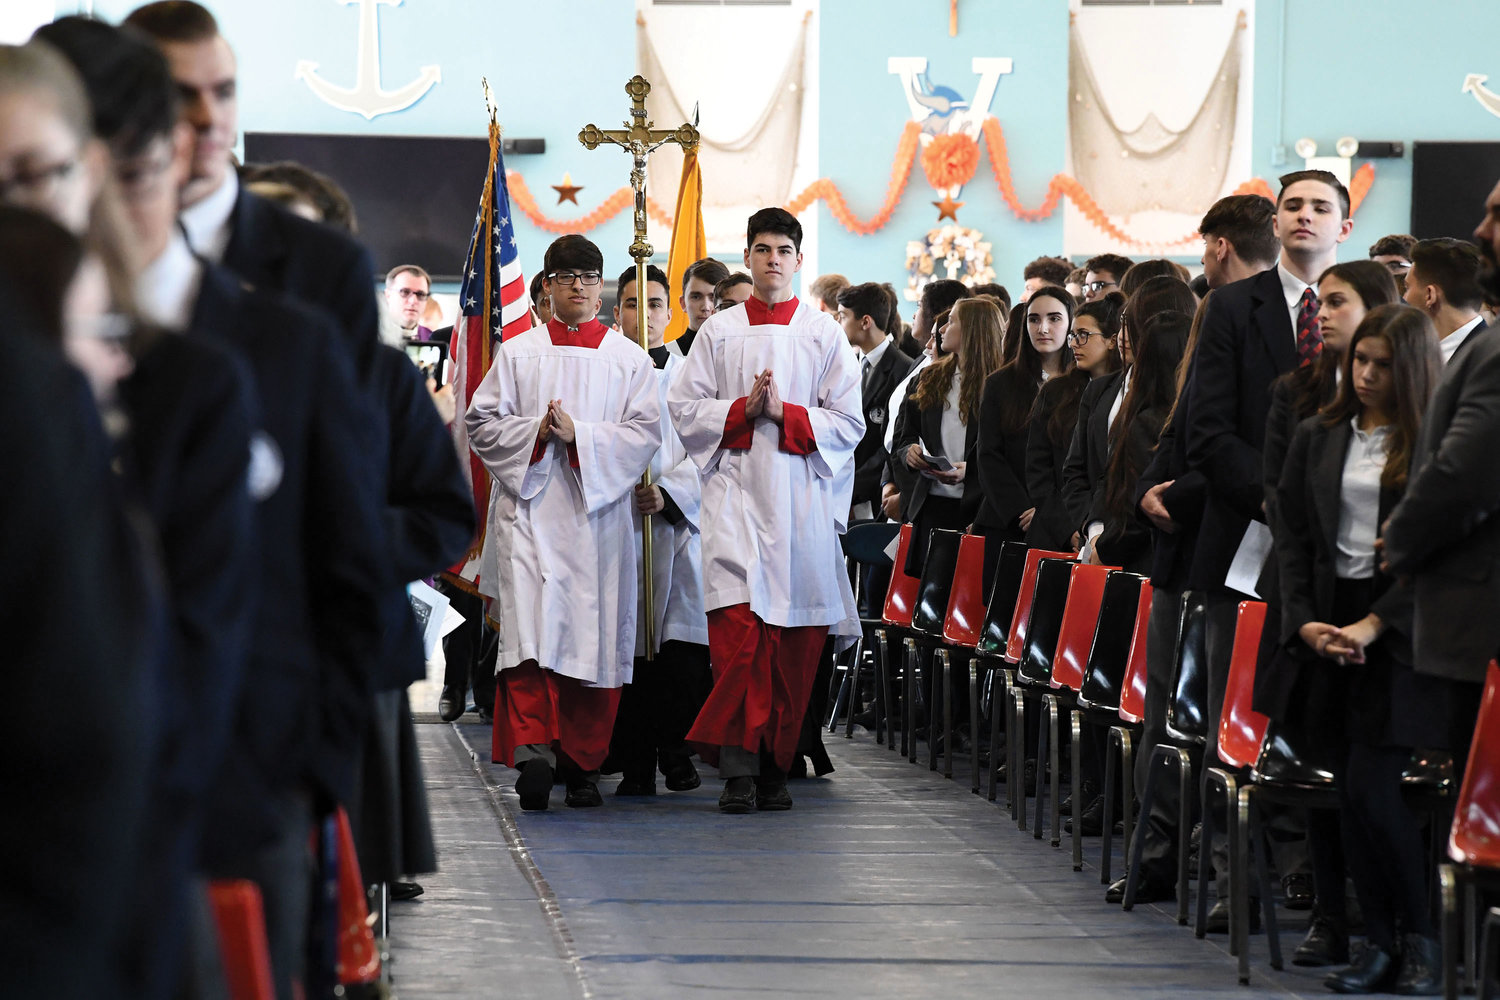 Altar servers lead the procession at the start of Mass celebrated by Cardinal Dolan.